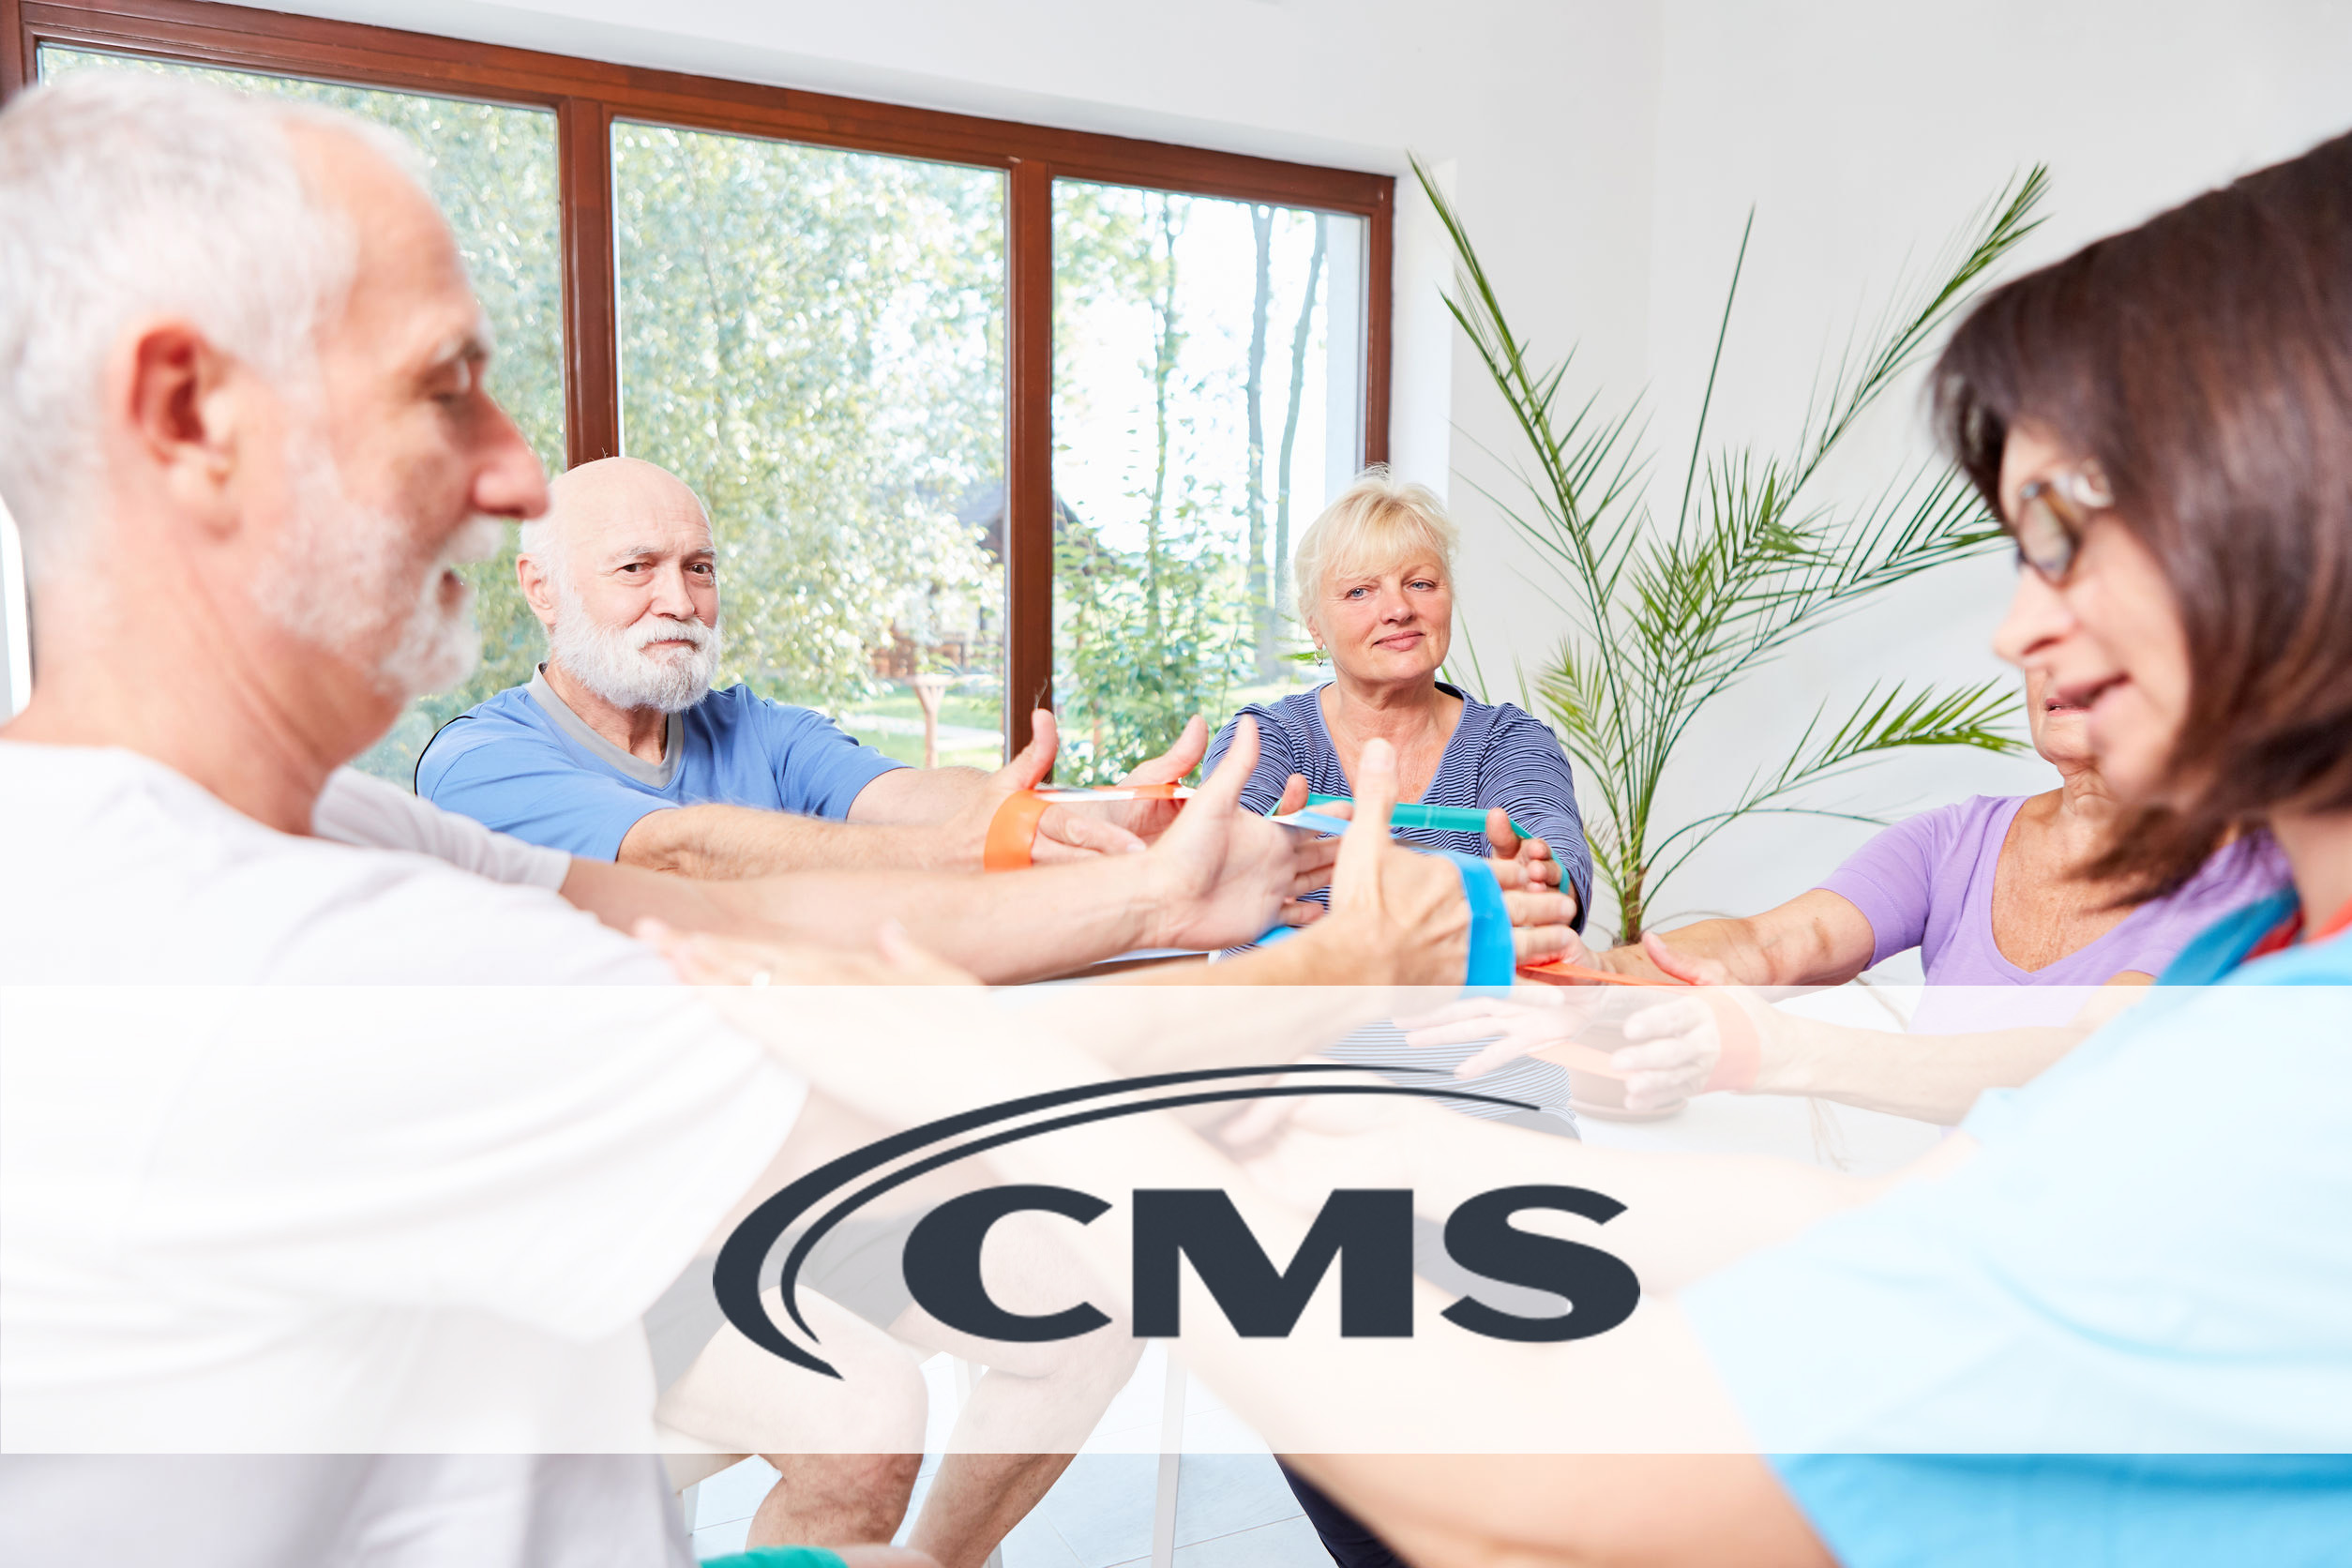 CMS adds two new G-Codes for Therapy Services